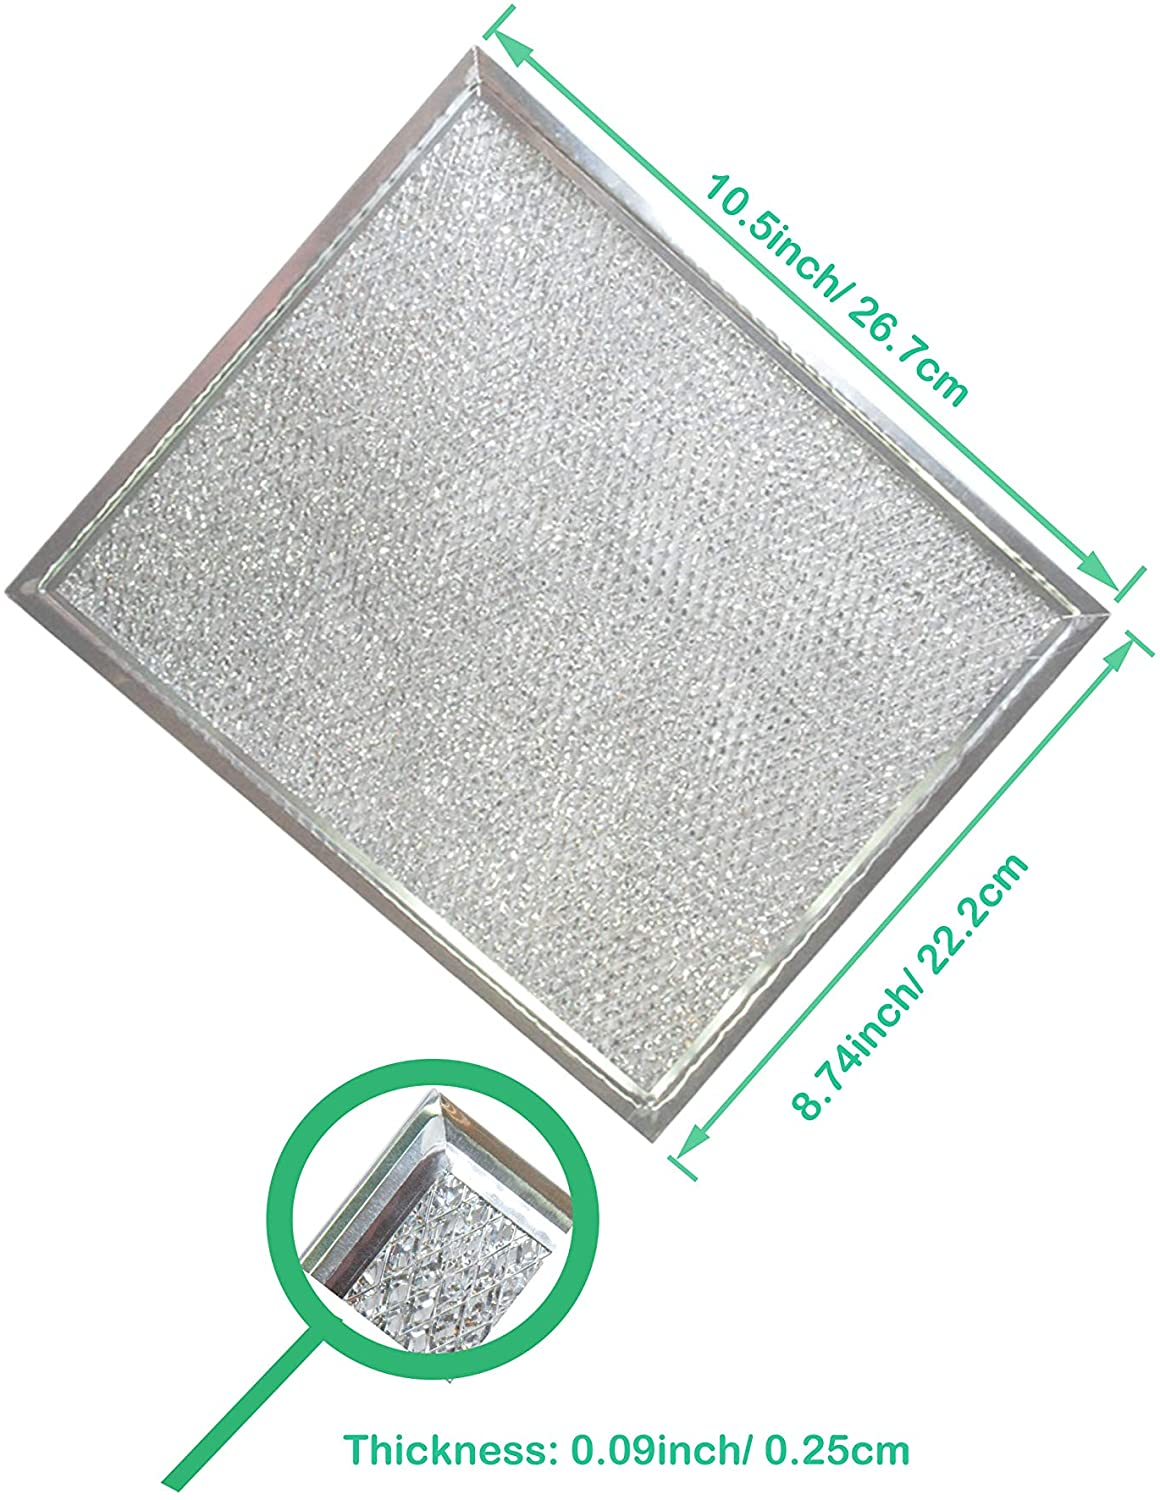 10.5 x 8.75 Inch Alum Amazinpure Broan Nutone NY NV ORIGINAL PART#S97006931 vent grease filter Compatible with Broan hotpoint BP29 range hood filter 97006931 Kenmore exhaust fan filter 1172137 5-3078 88150 99010121 C88150 K758900 10-1//2 x 8-3//4 x 3//32